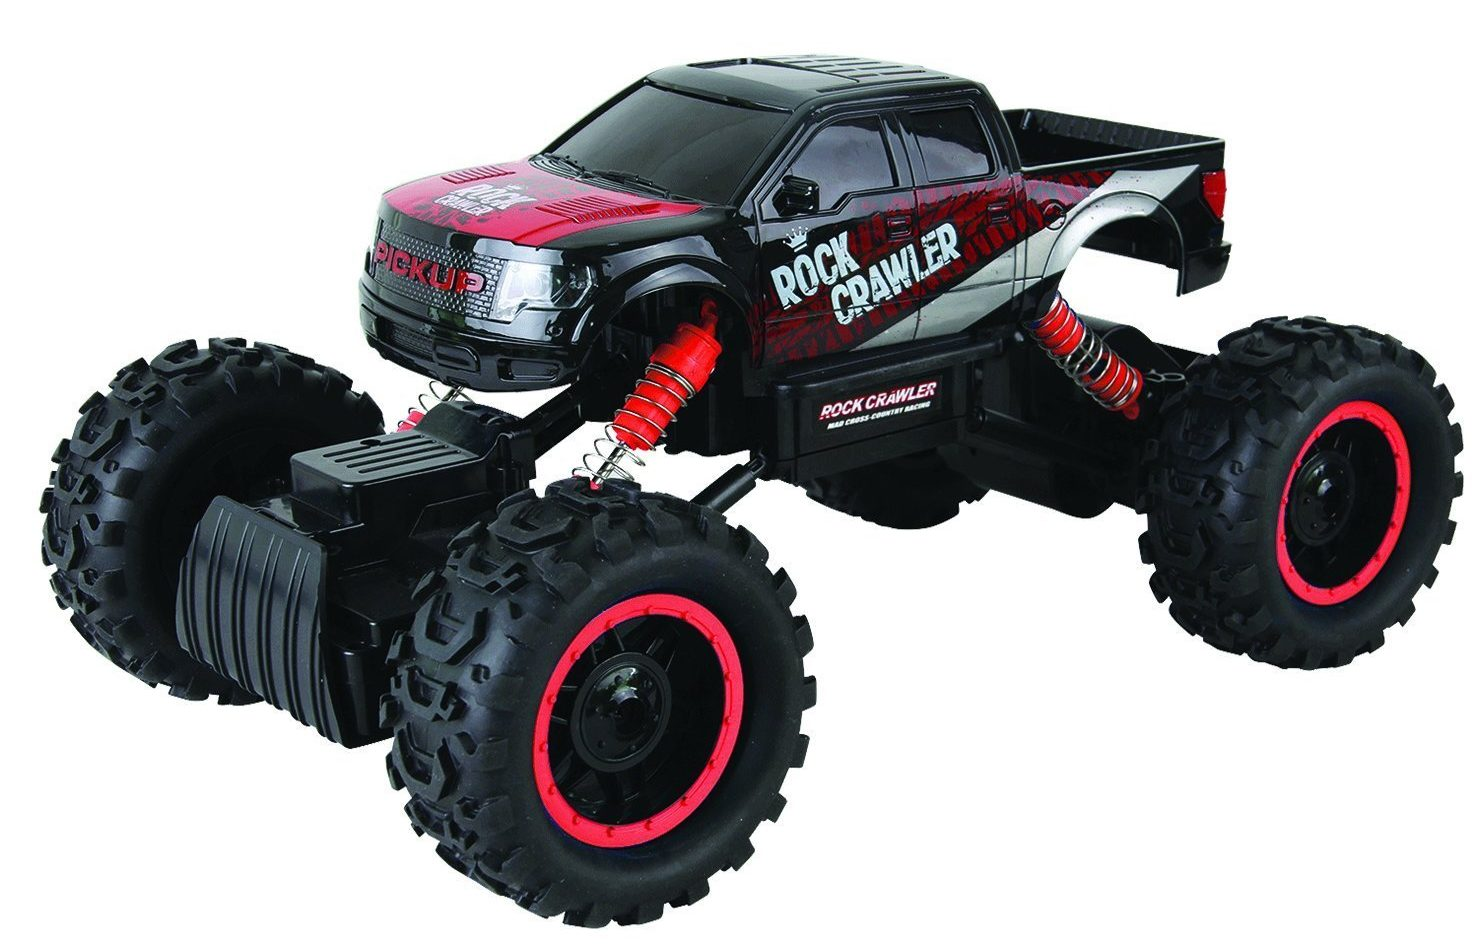 1 14 Scale RC Monster Truck for Kids in India